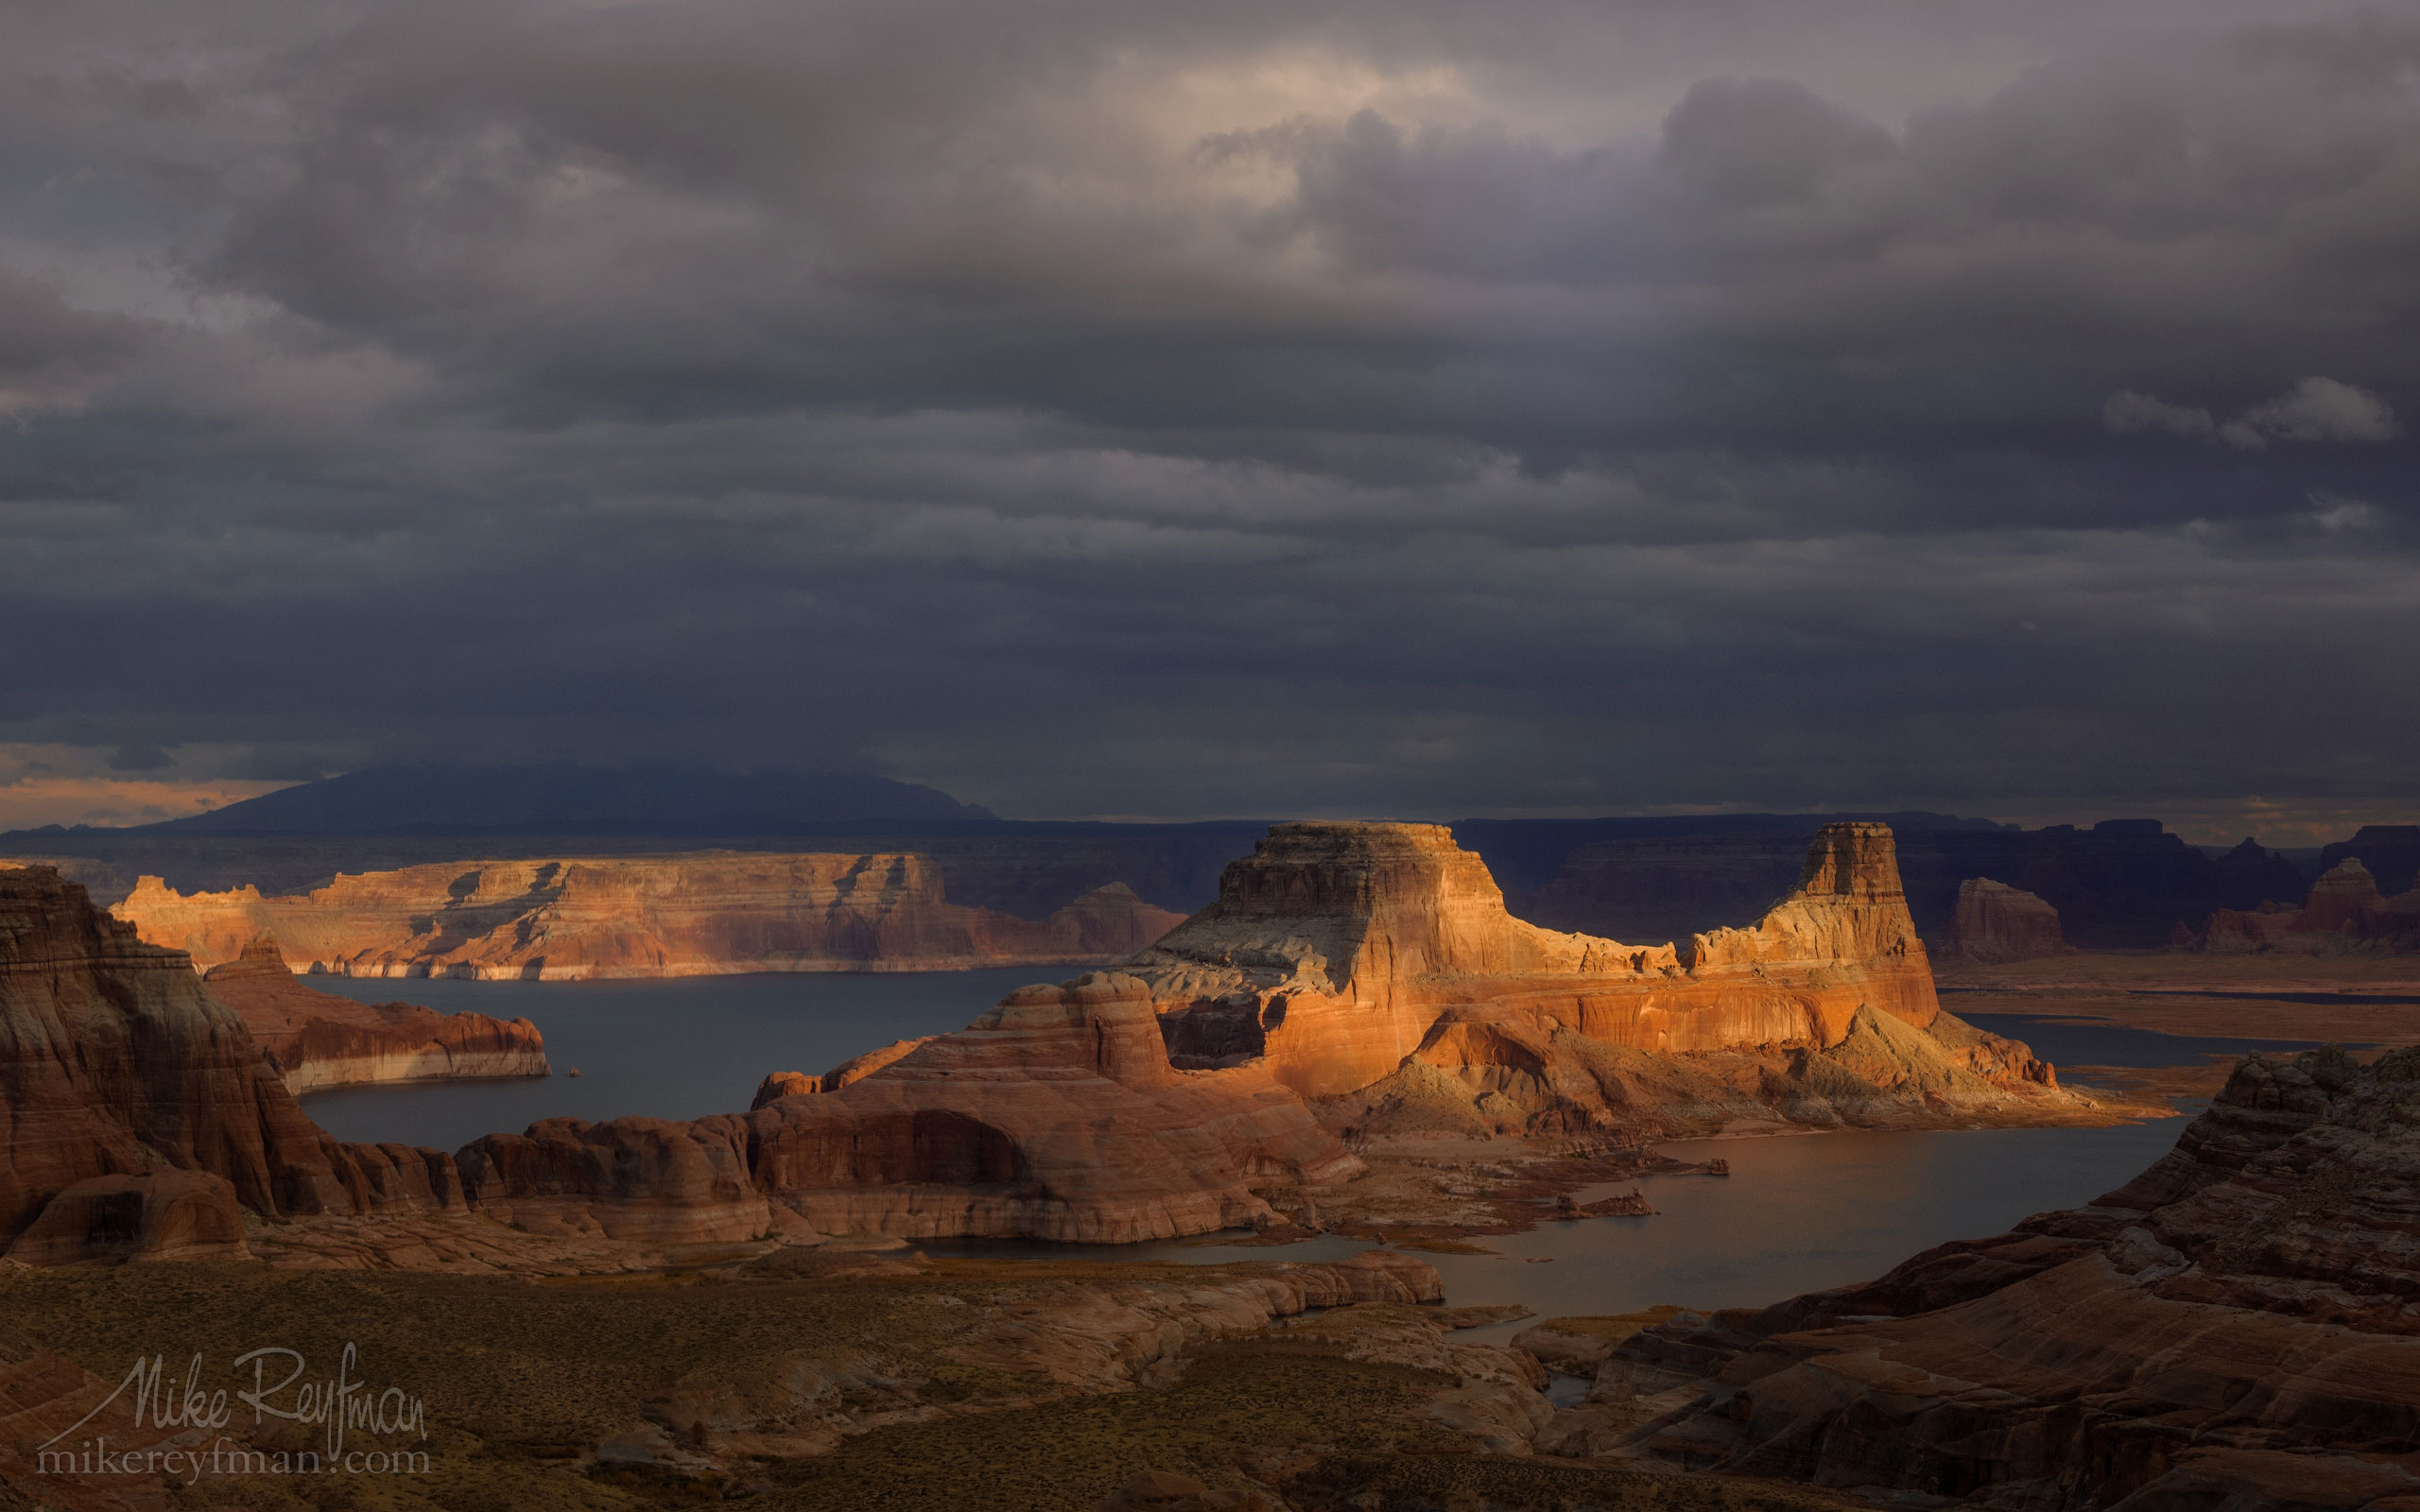 Romana Mesa, Alstrom Point. Gunsight Butte in Padre Bay. Lake Powell, Glen Canyon NRA, Uta/Arizona, USA. 015-LP3_MER0495.jpg - Lake Powell, Glen Canyon NAR. Colorado and Sun Juan Rivers. Utah/Arizona, USA  - Mike Reyfman Photography